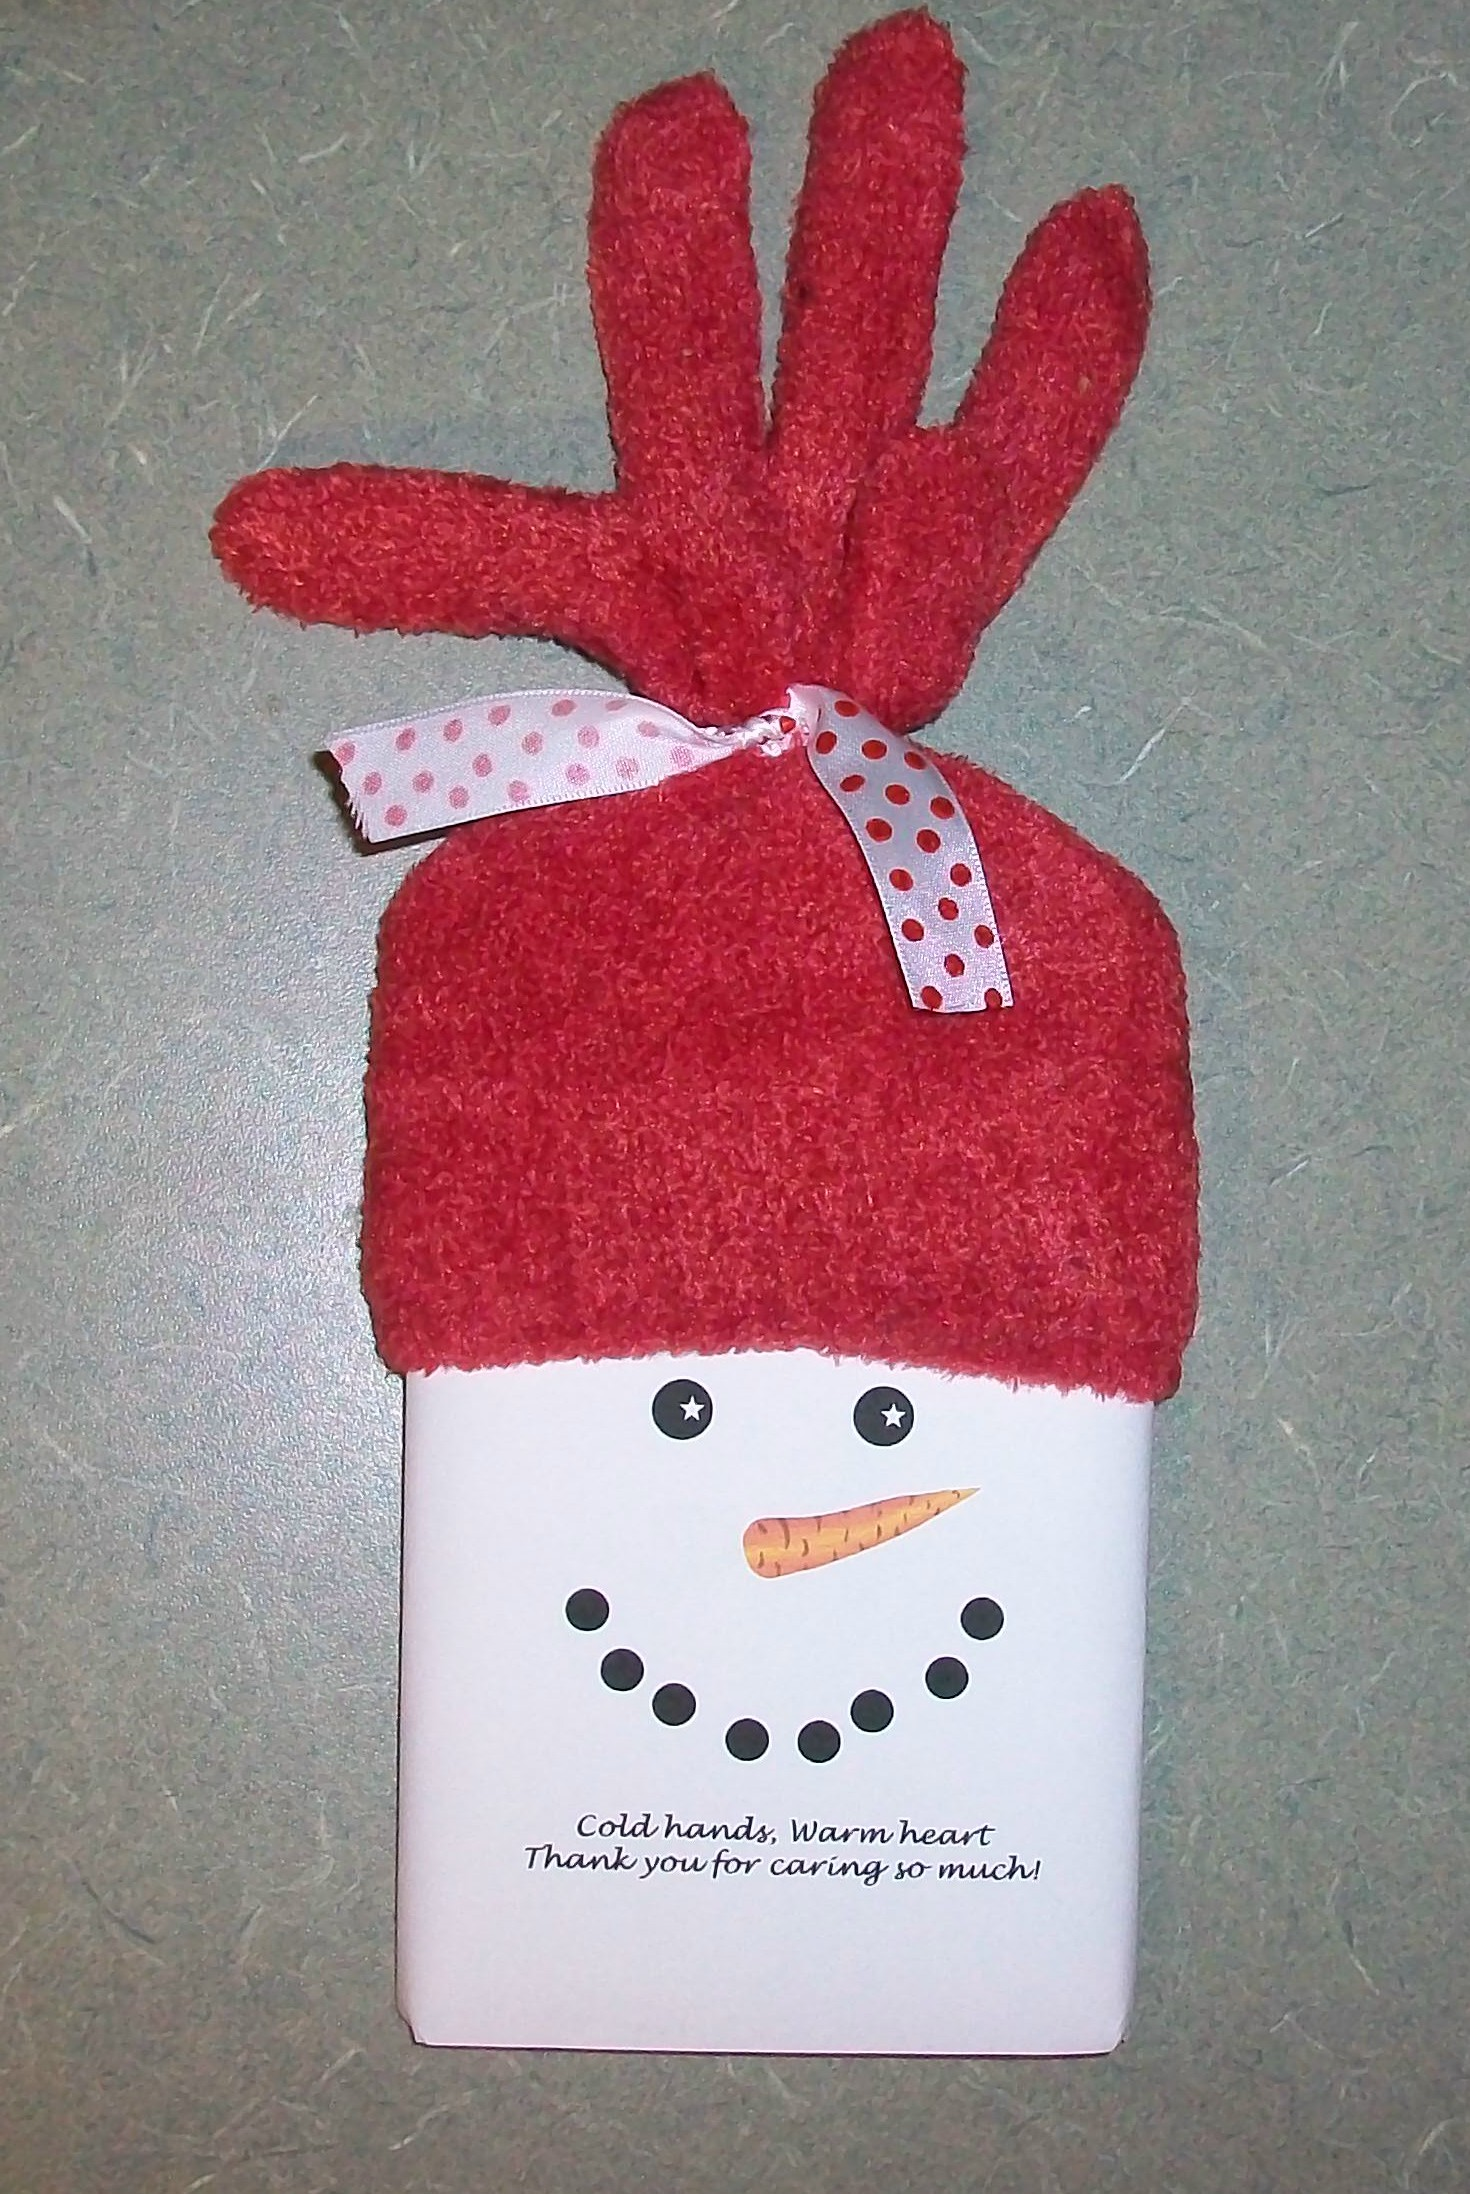 It's a Crafty Christmas: Snowman Popcorn Wrapper